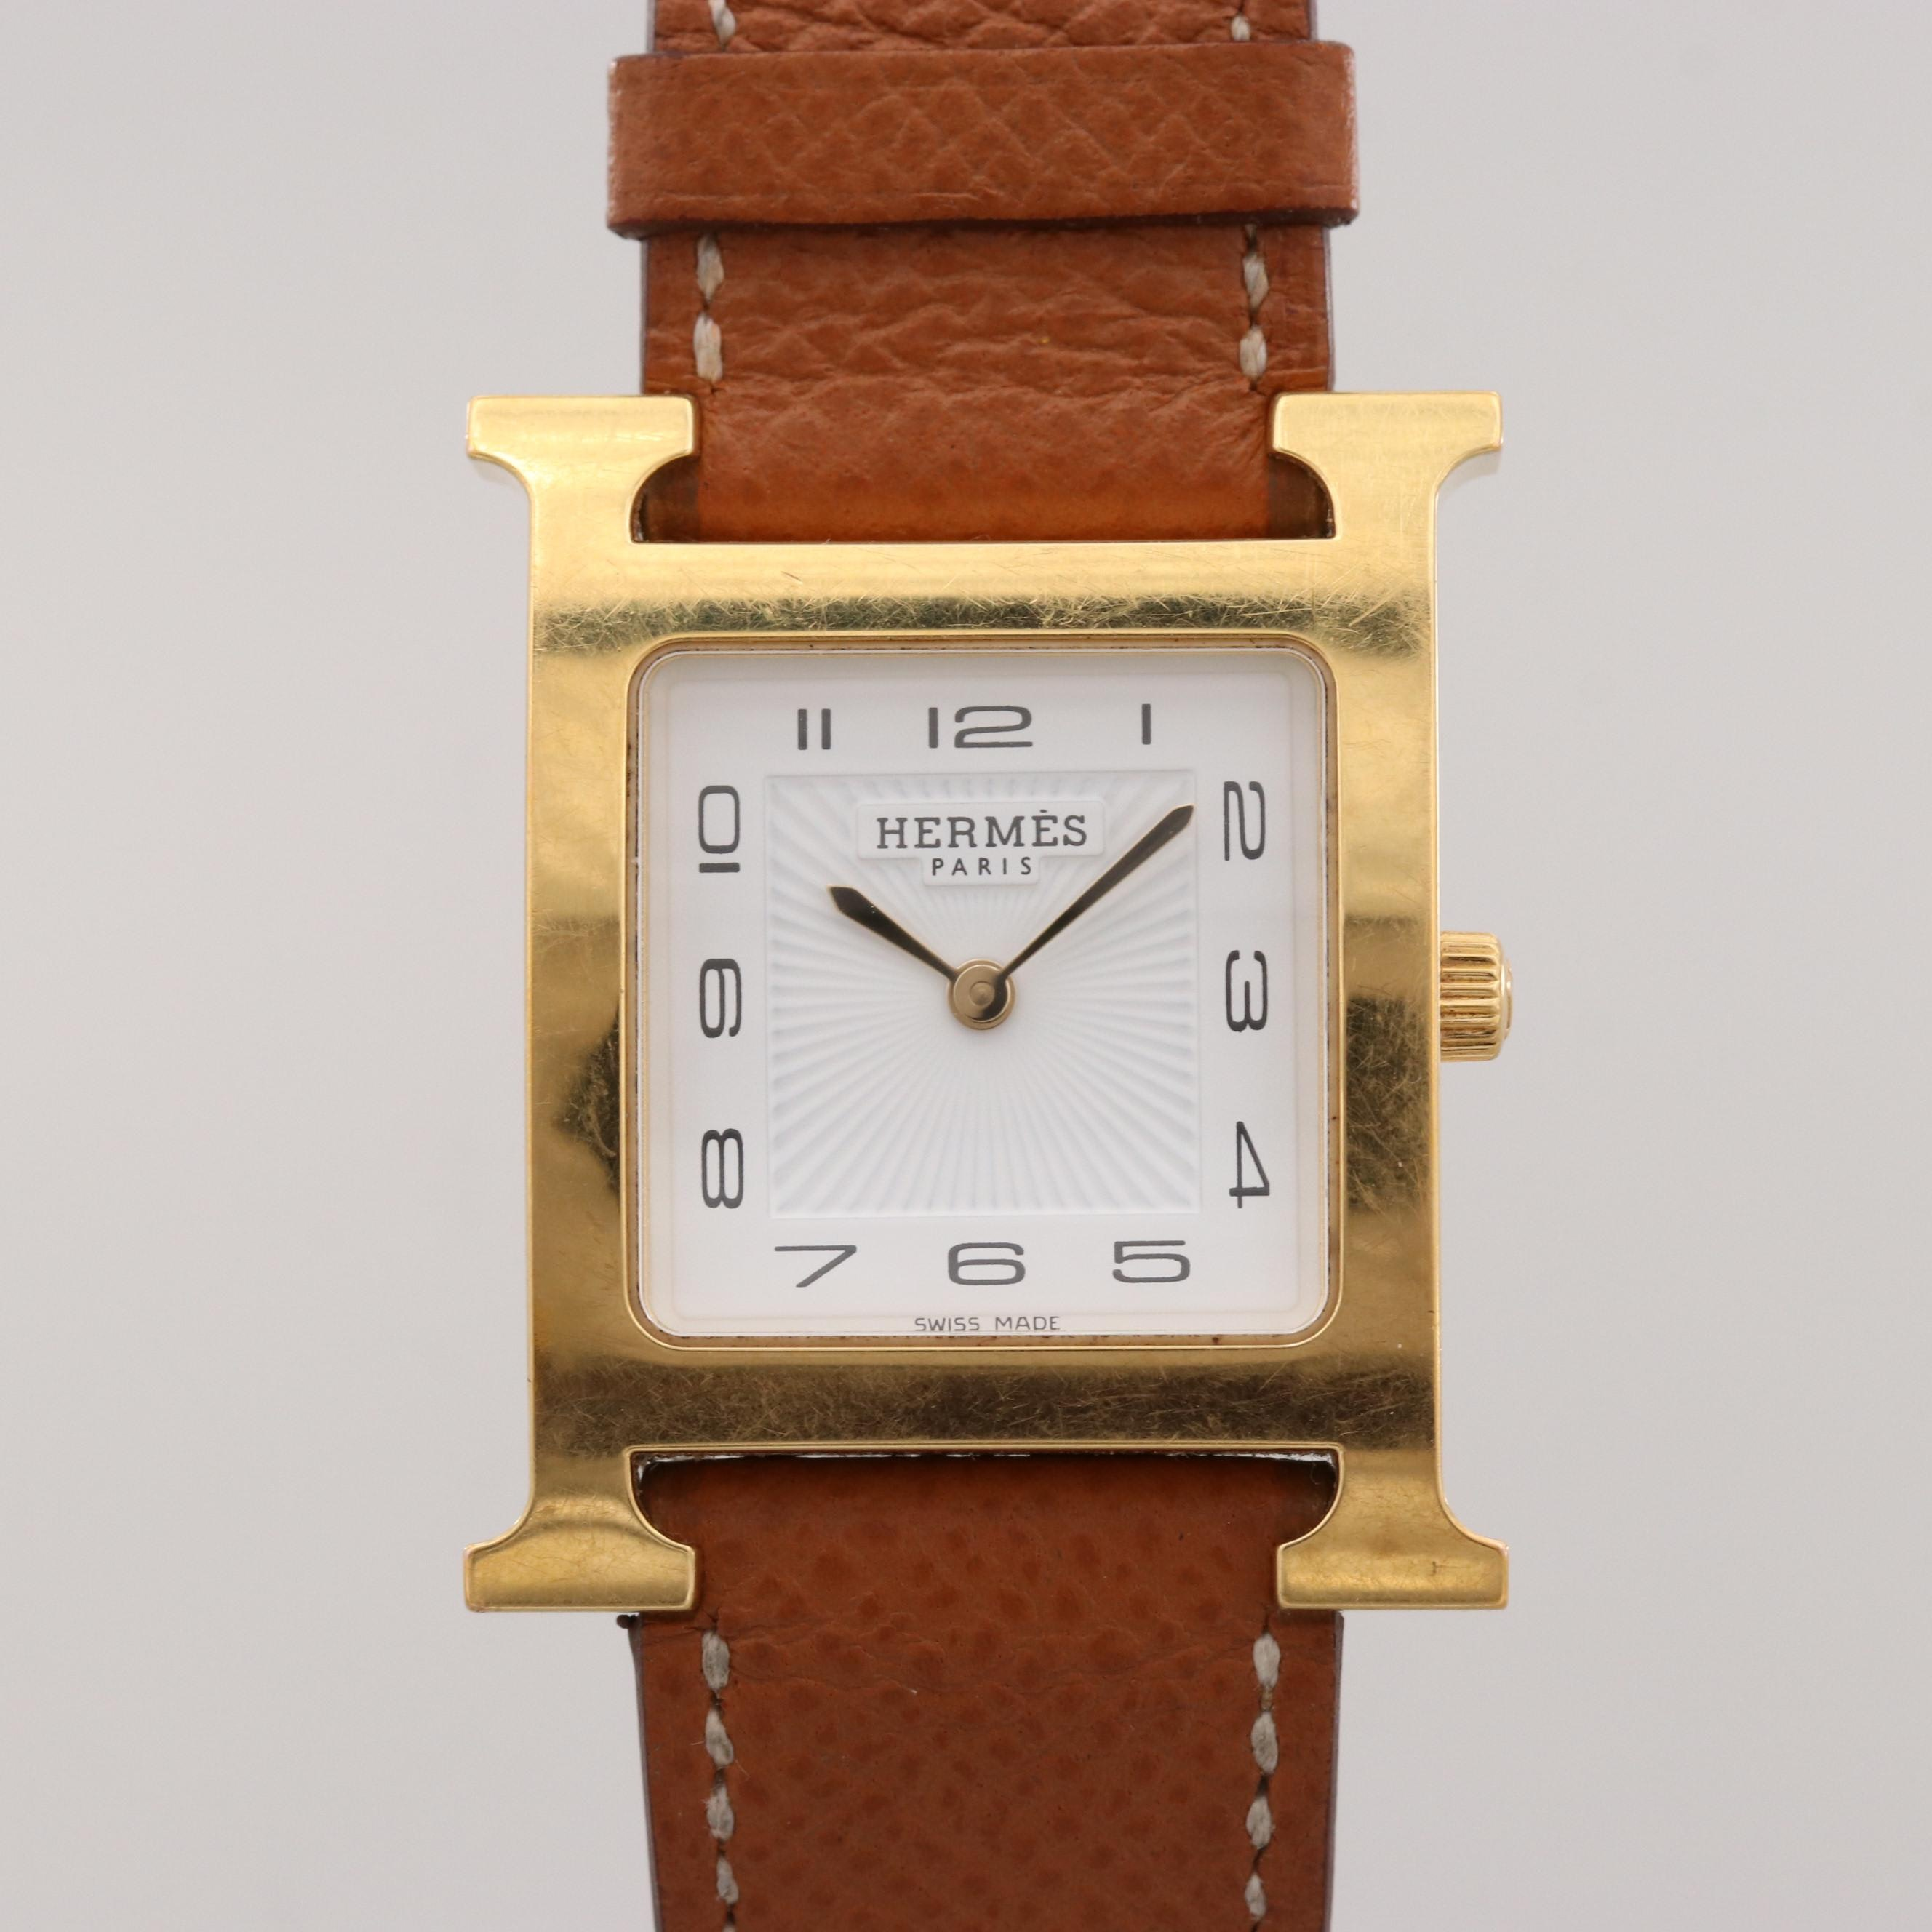 Hermès Heure H 18K Gold Plated and Stainless Steel Wristwatch